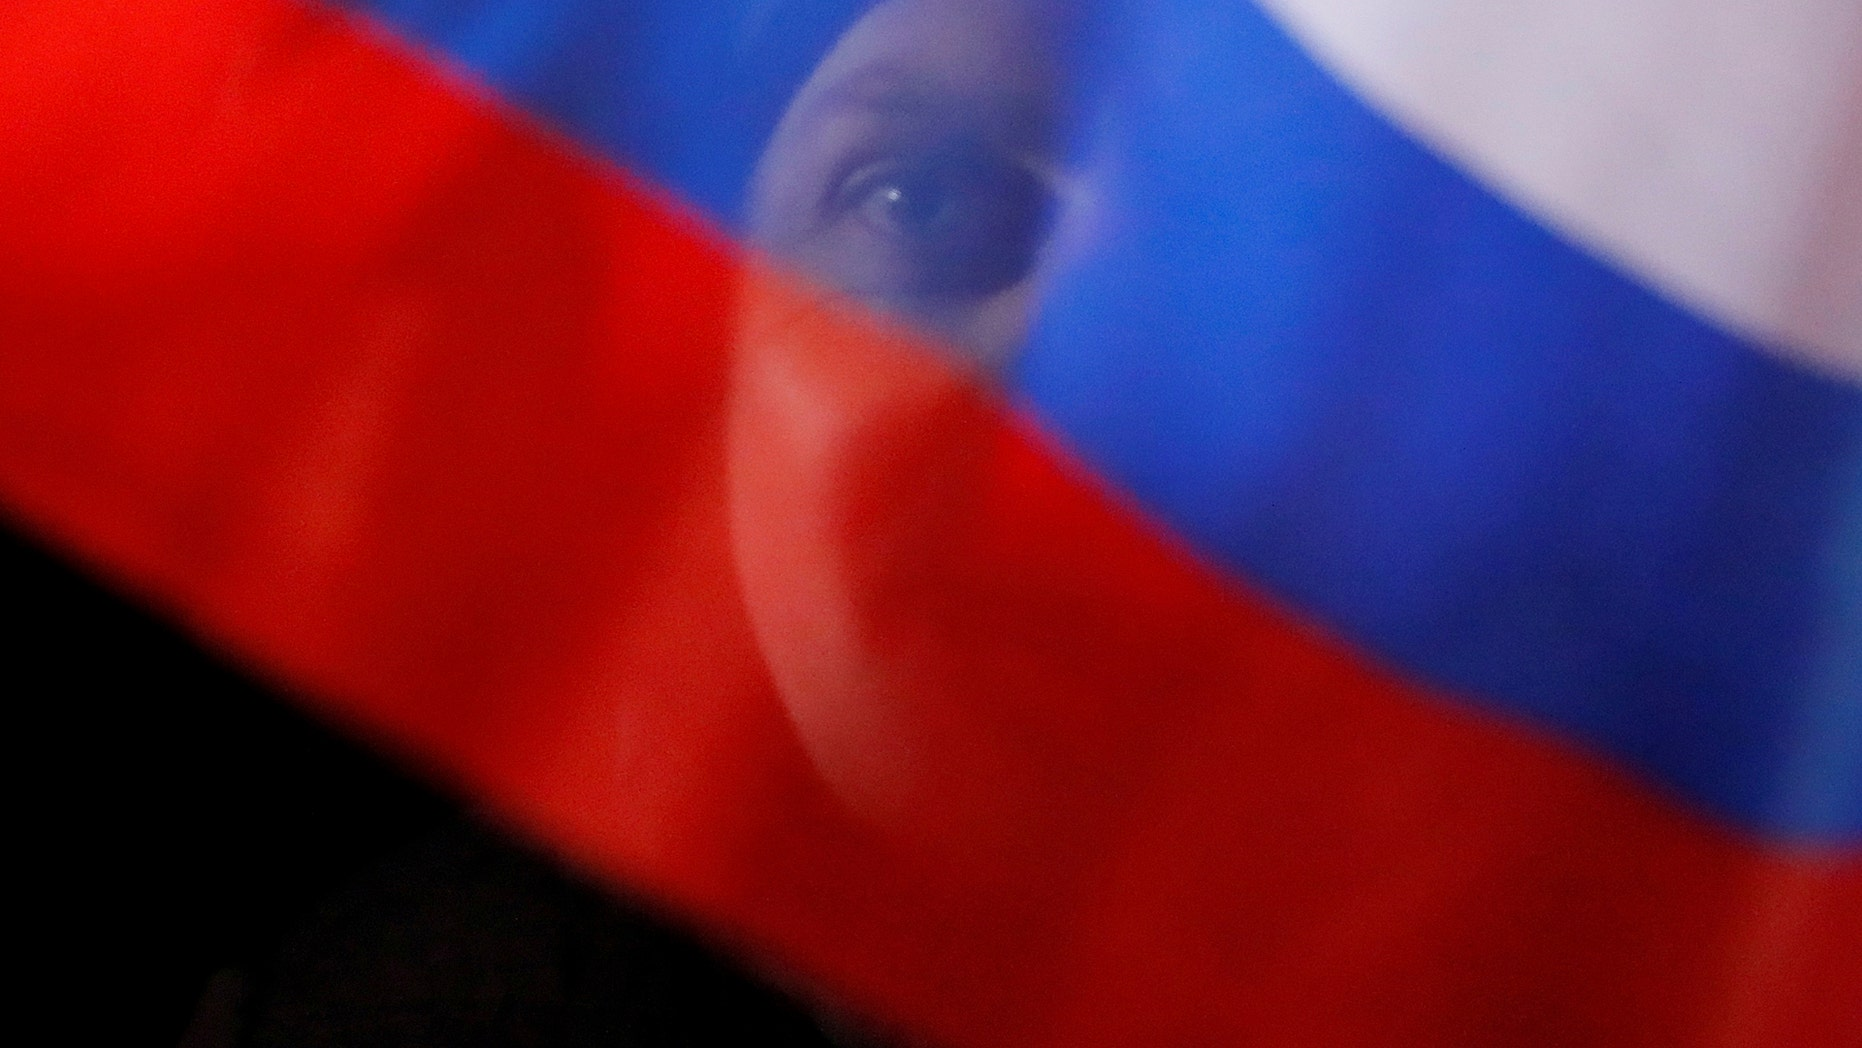 A man waves Russian flag during a rally and concert marking the fourth anniversary of Russia's annexation of the Crimea region, at Manezhnaya Square in central Moscow, Russia March 18, 2018. REUTERS/Maxim Shemetov